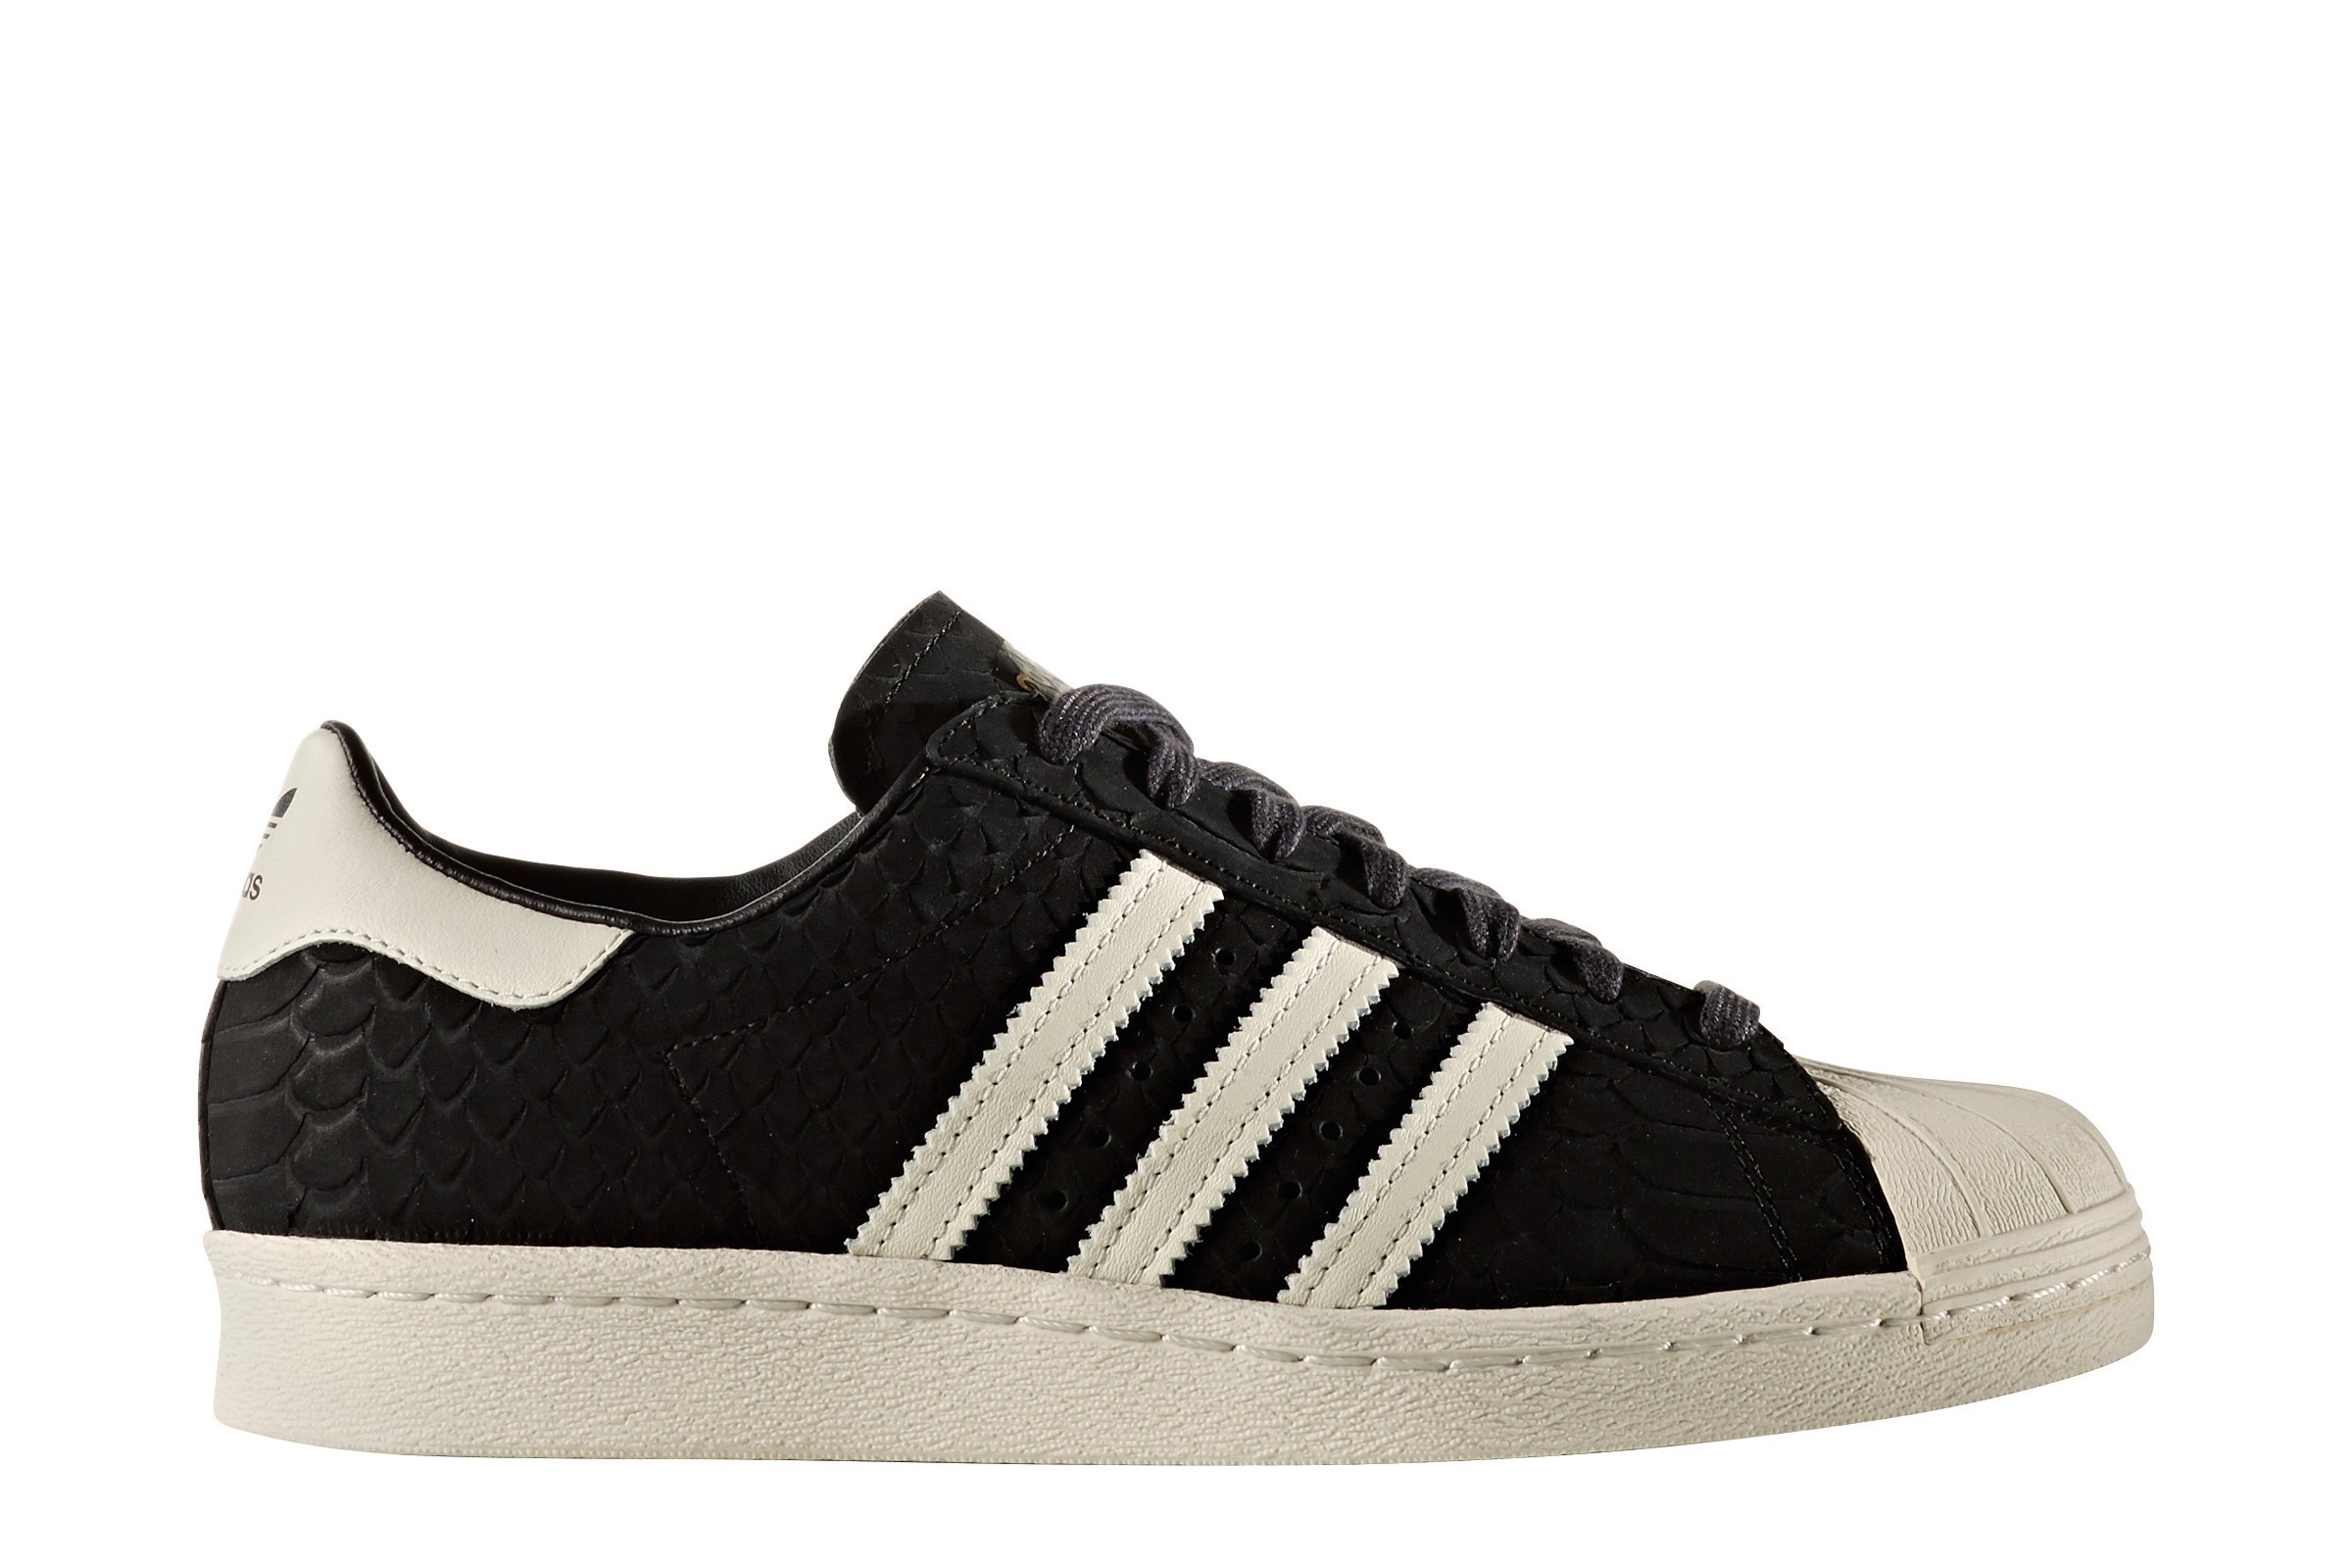 reputable site c53bc 5482a adidas Originals Superstar 80s W - Utility Black / Off White / Off White